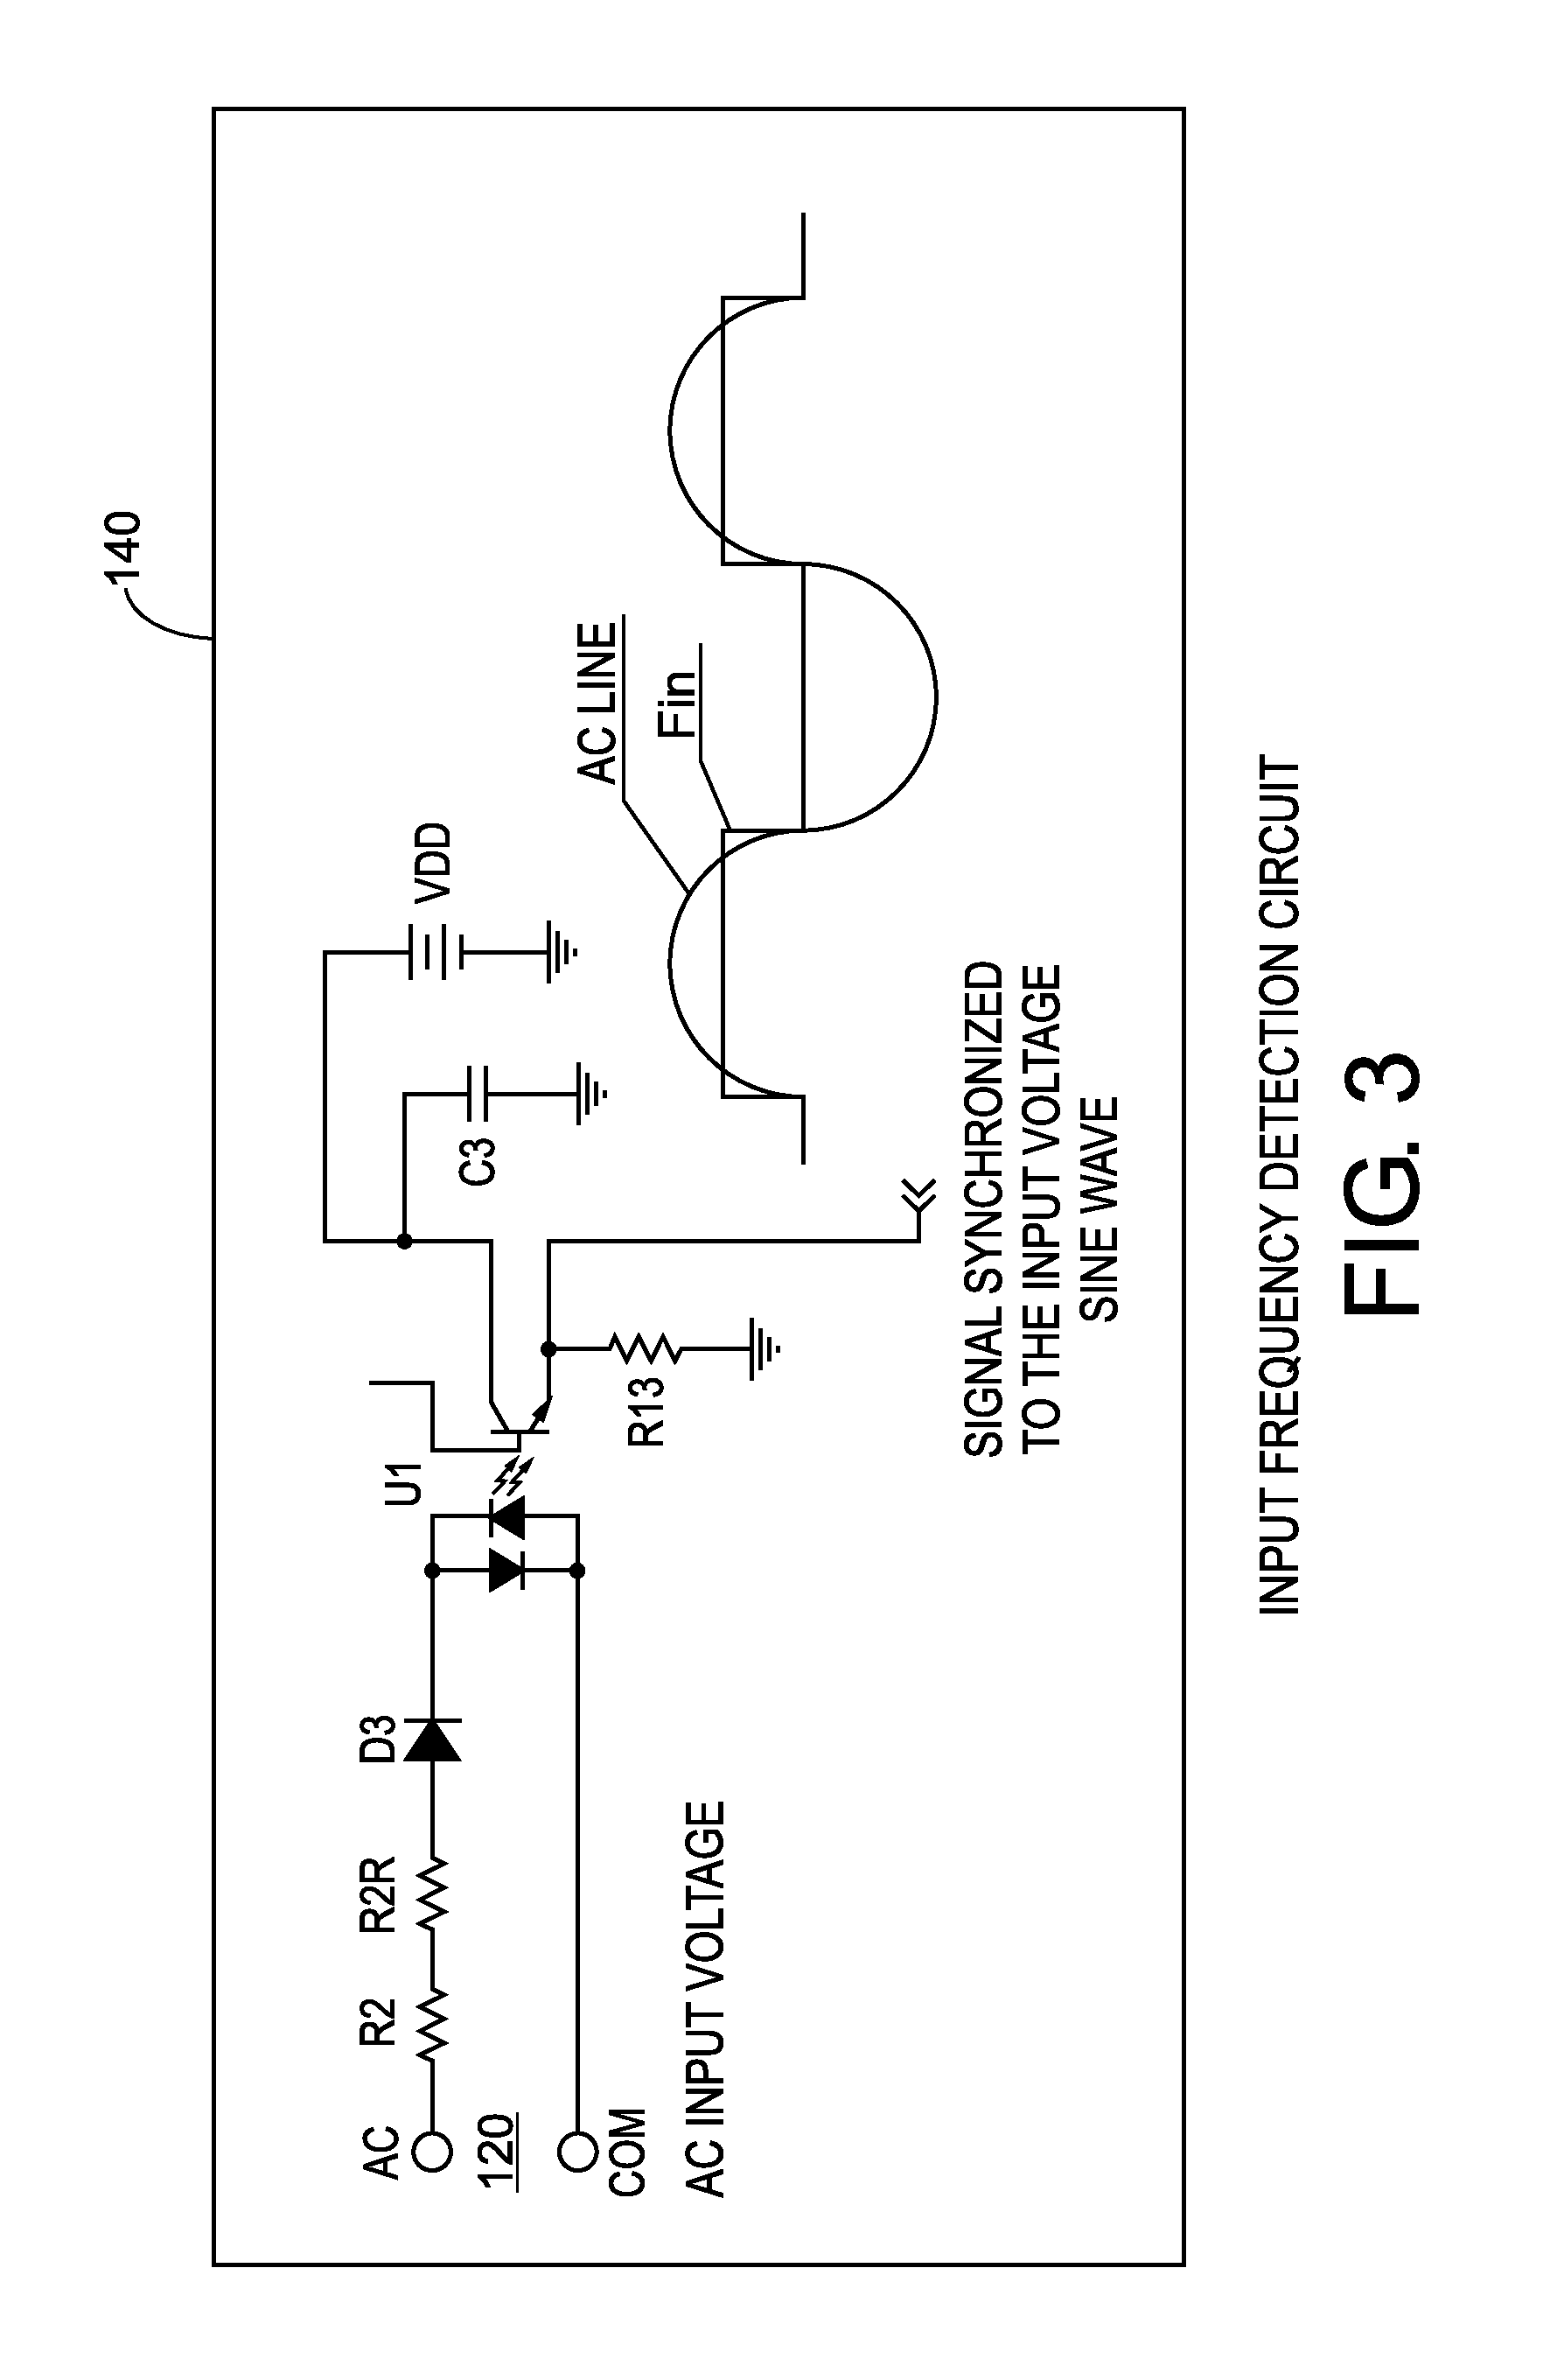 Brevet Us20120262077 Led Traffic Signal With Synchronized Power Circuit Diagram Of Mains Voltage Control Patent Drawing